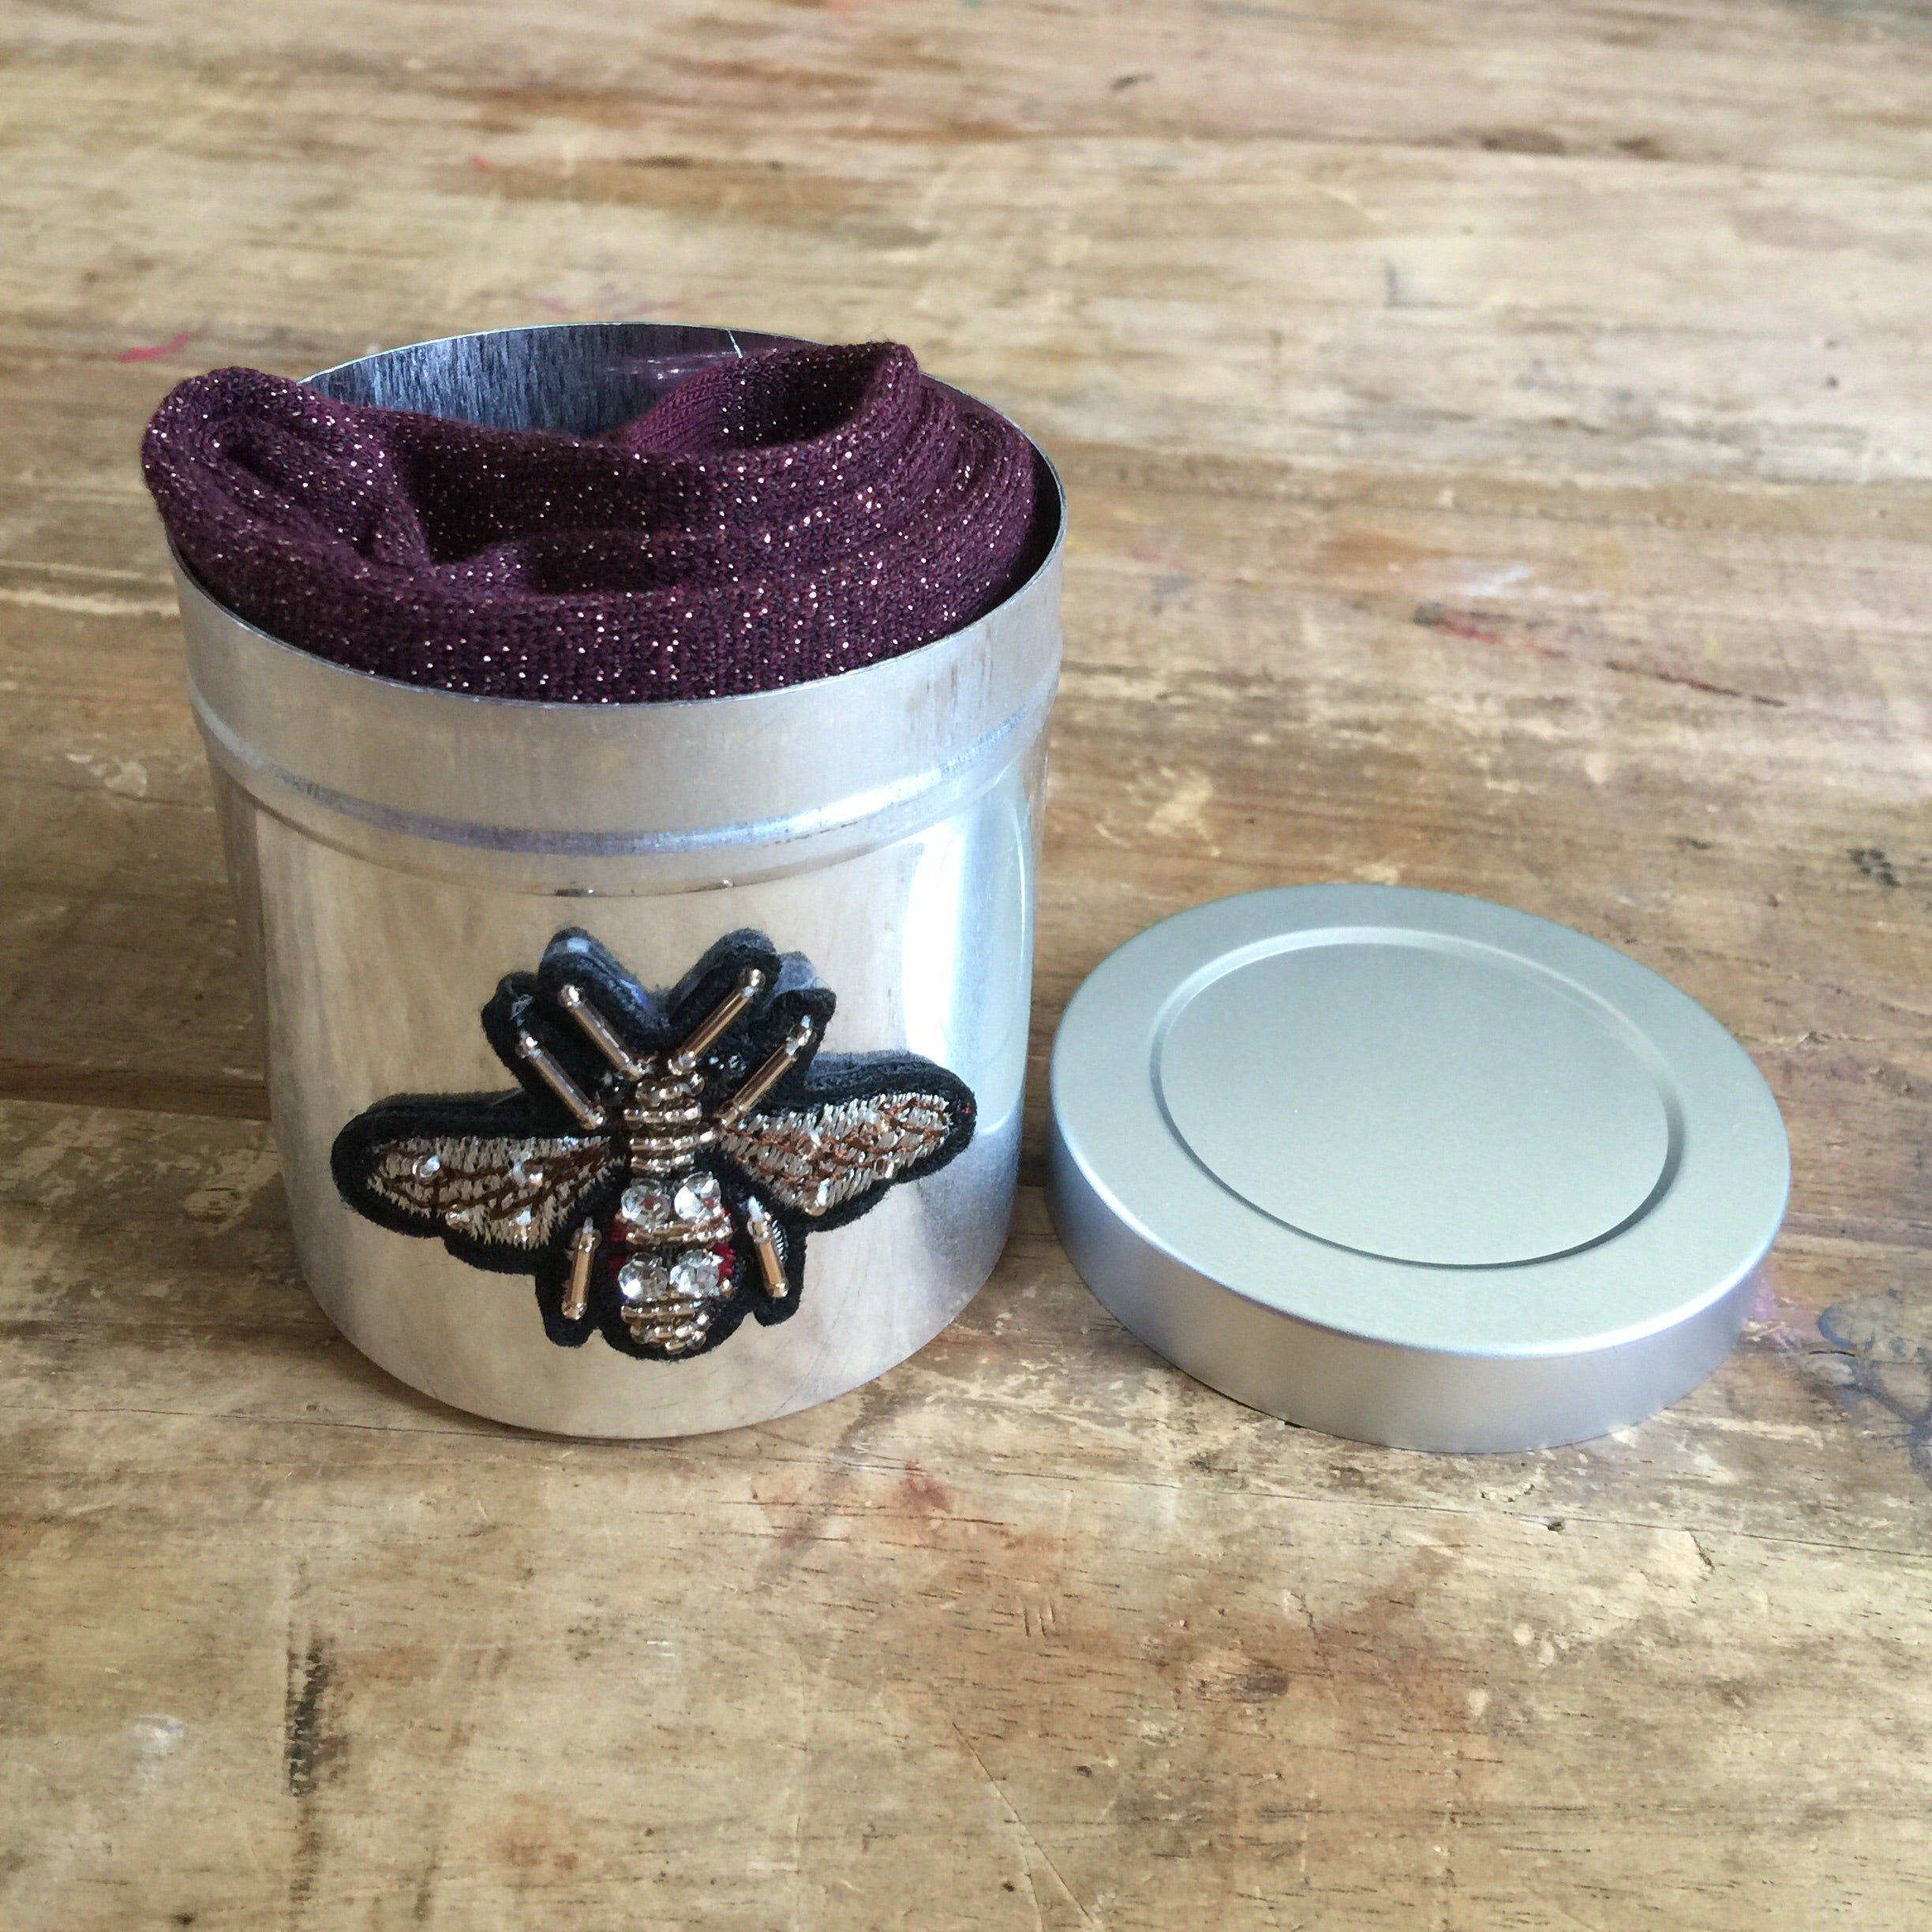 Tokyo plum socks in a small insect tin